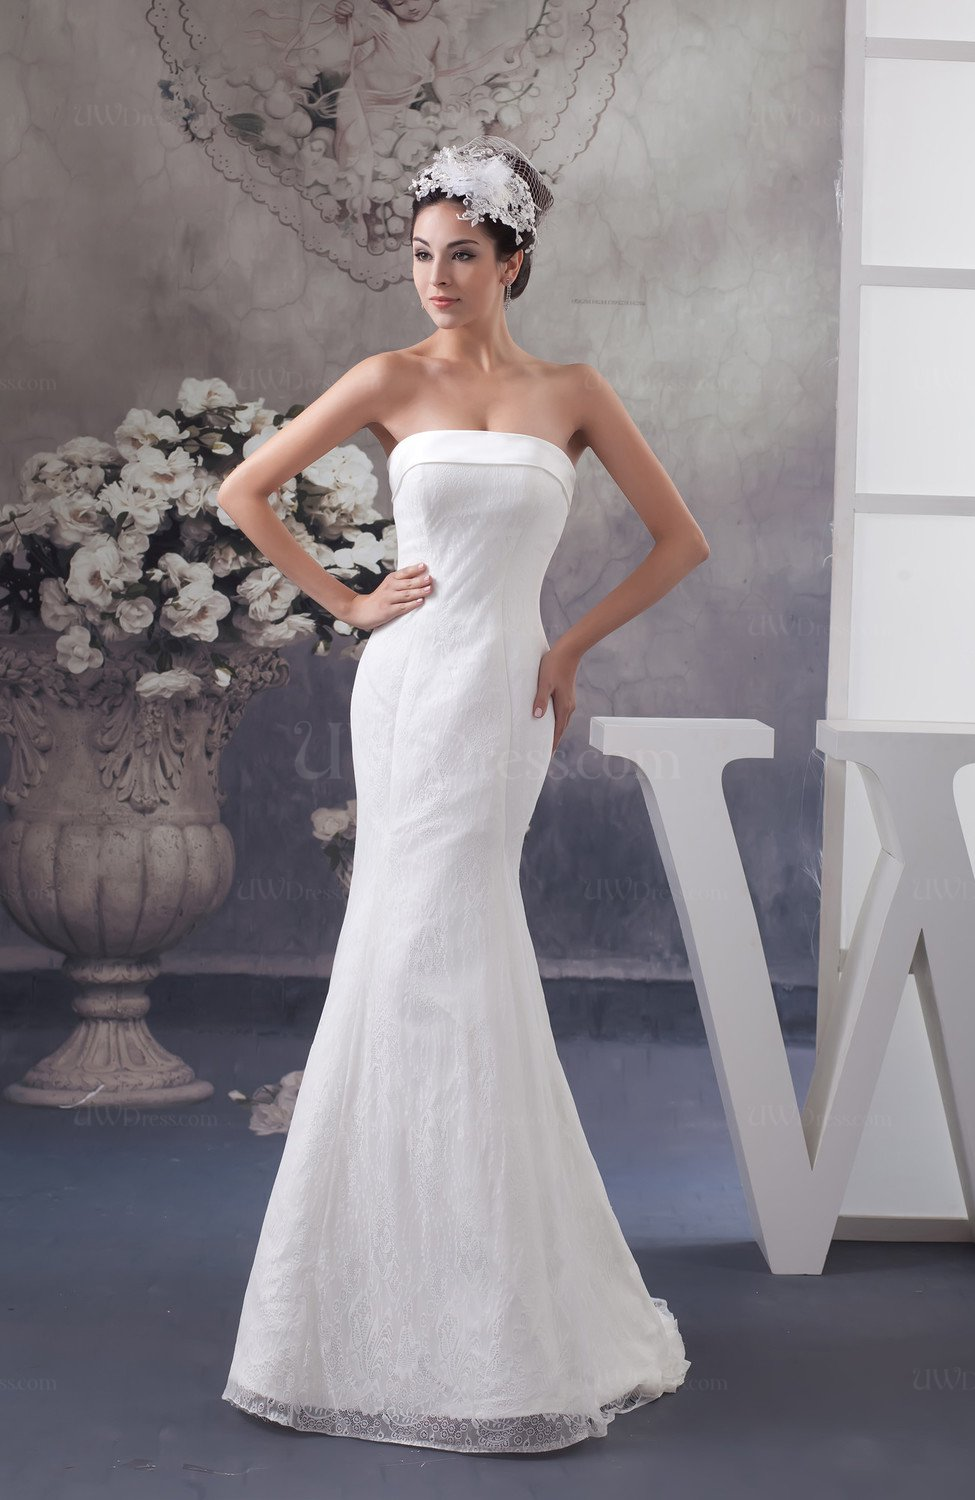 sleeveless wedding dresses mermaid bridal gowns low back backless glamorous 7546